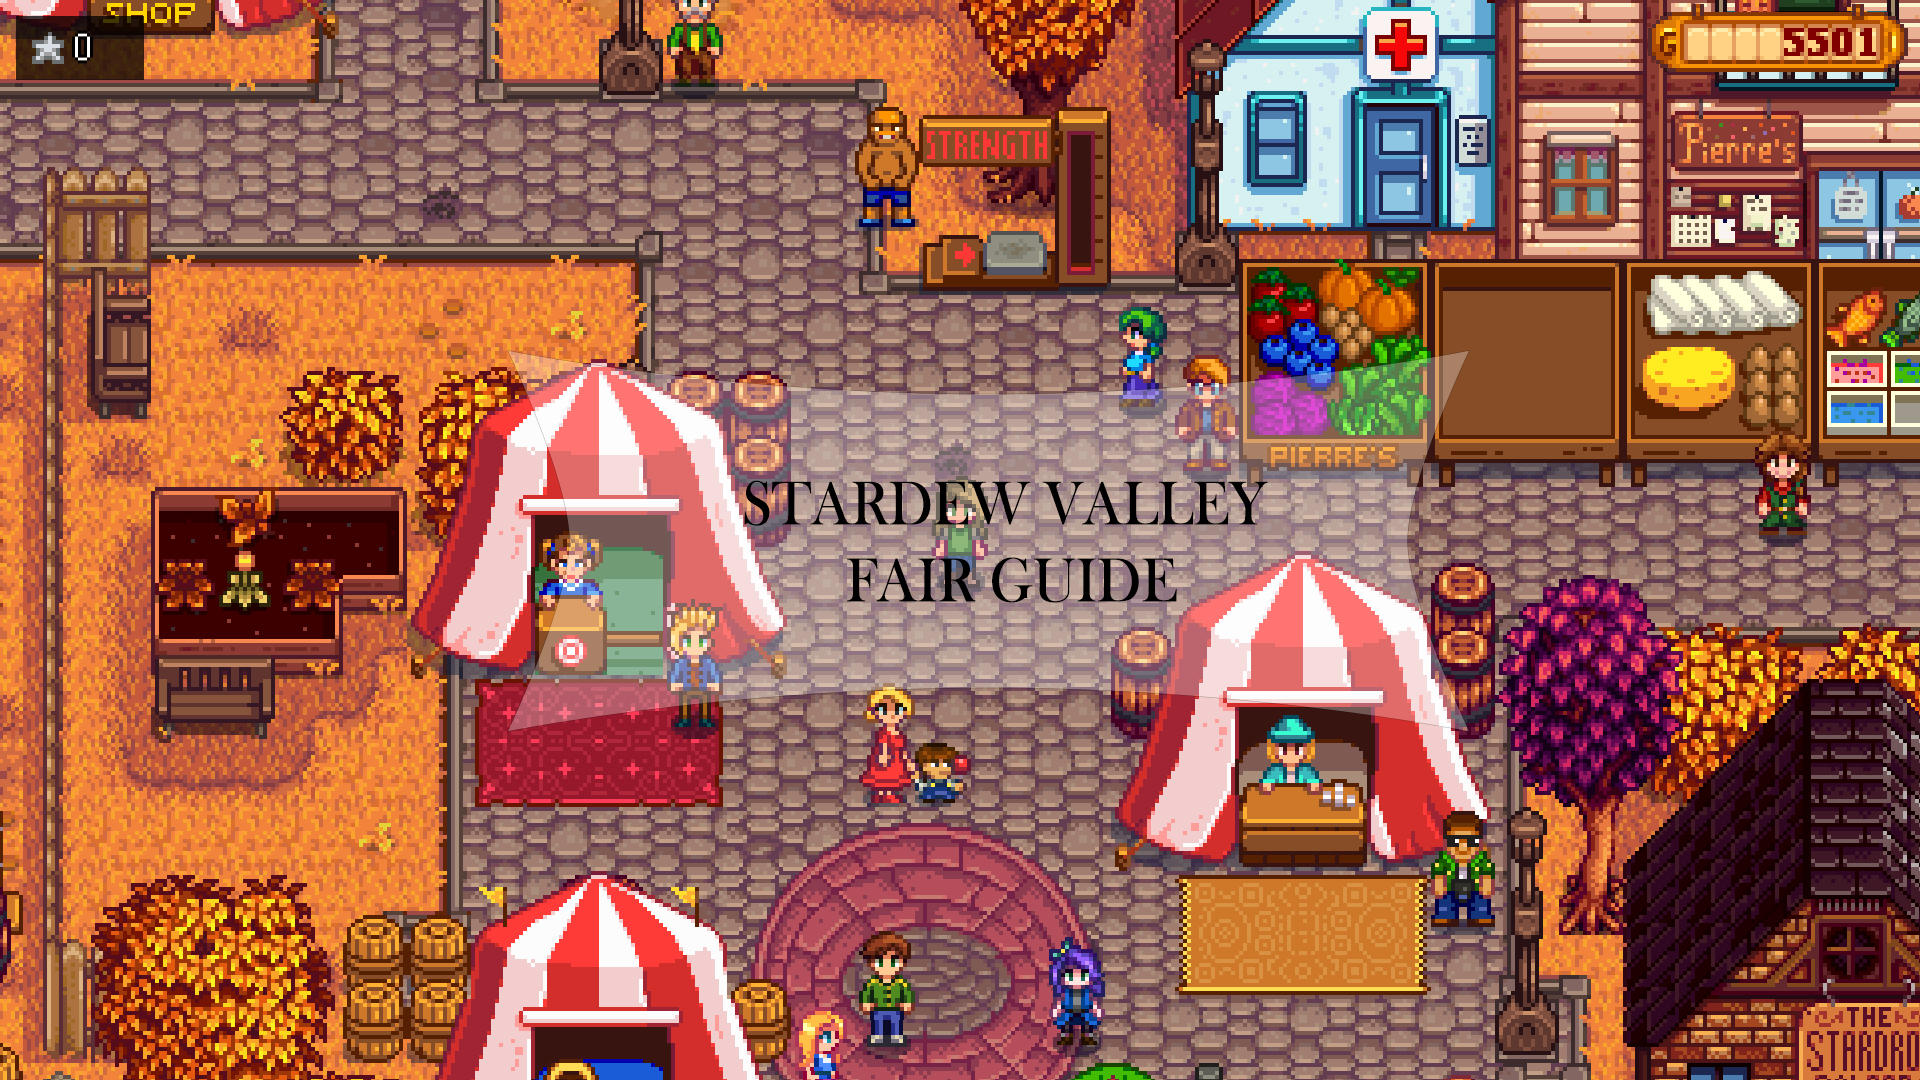 Stardew Valley Fair guide